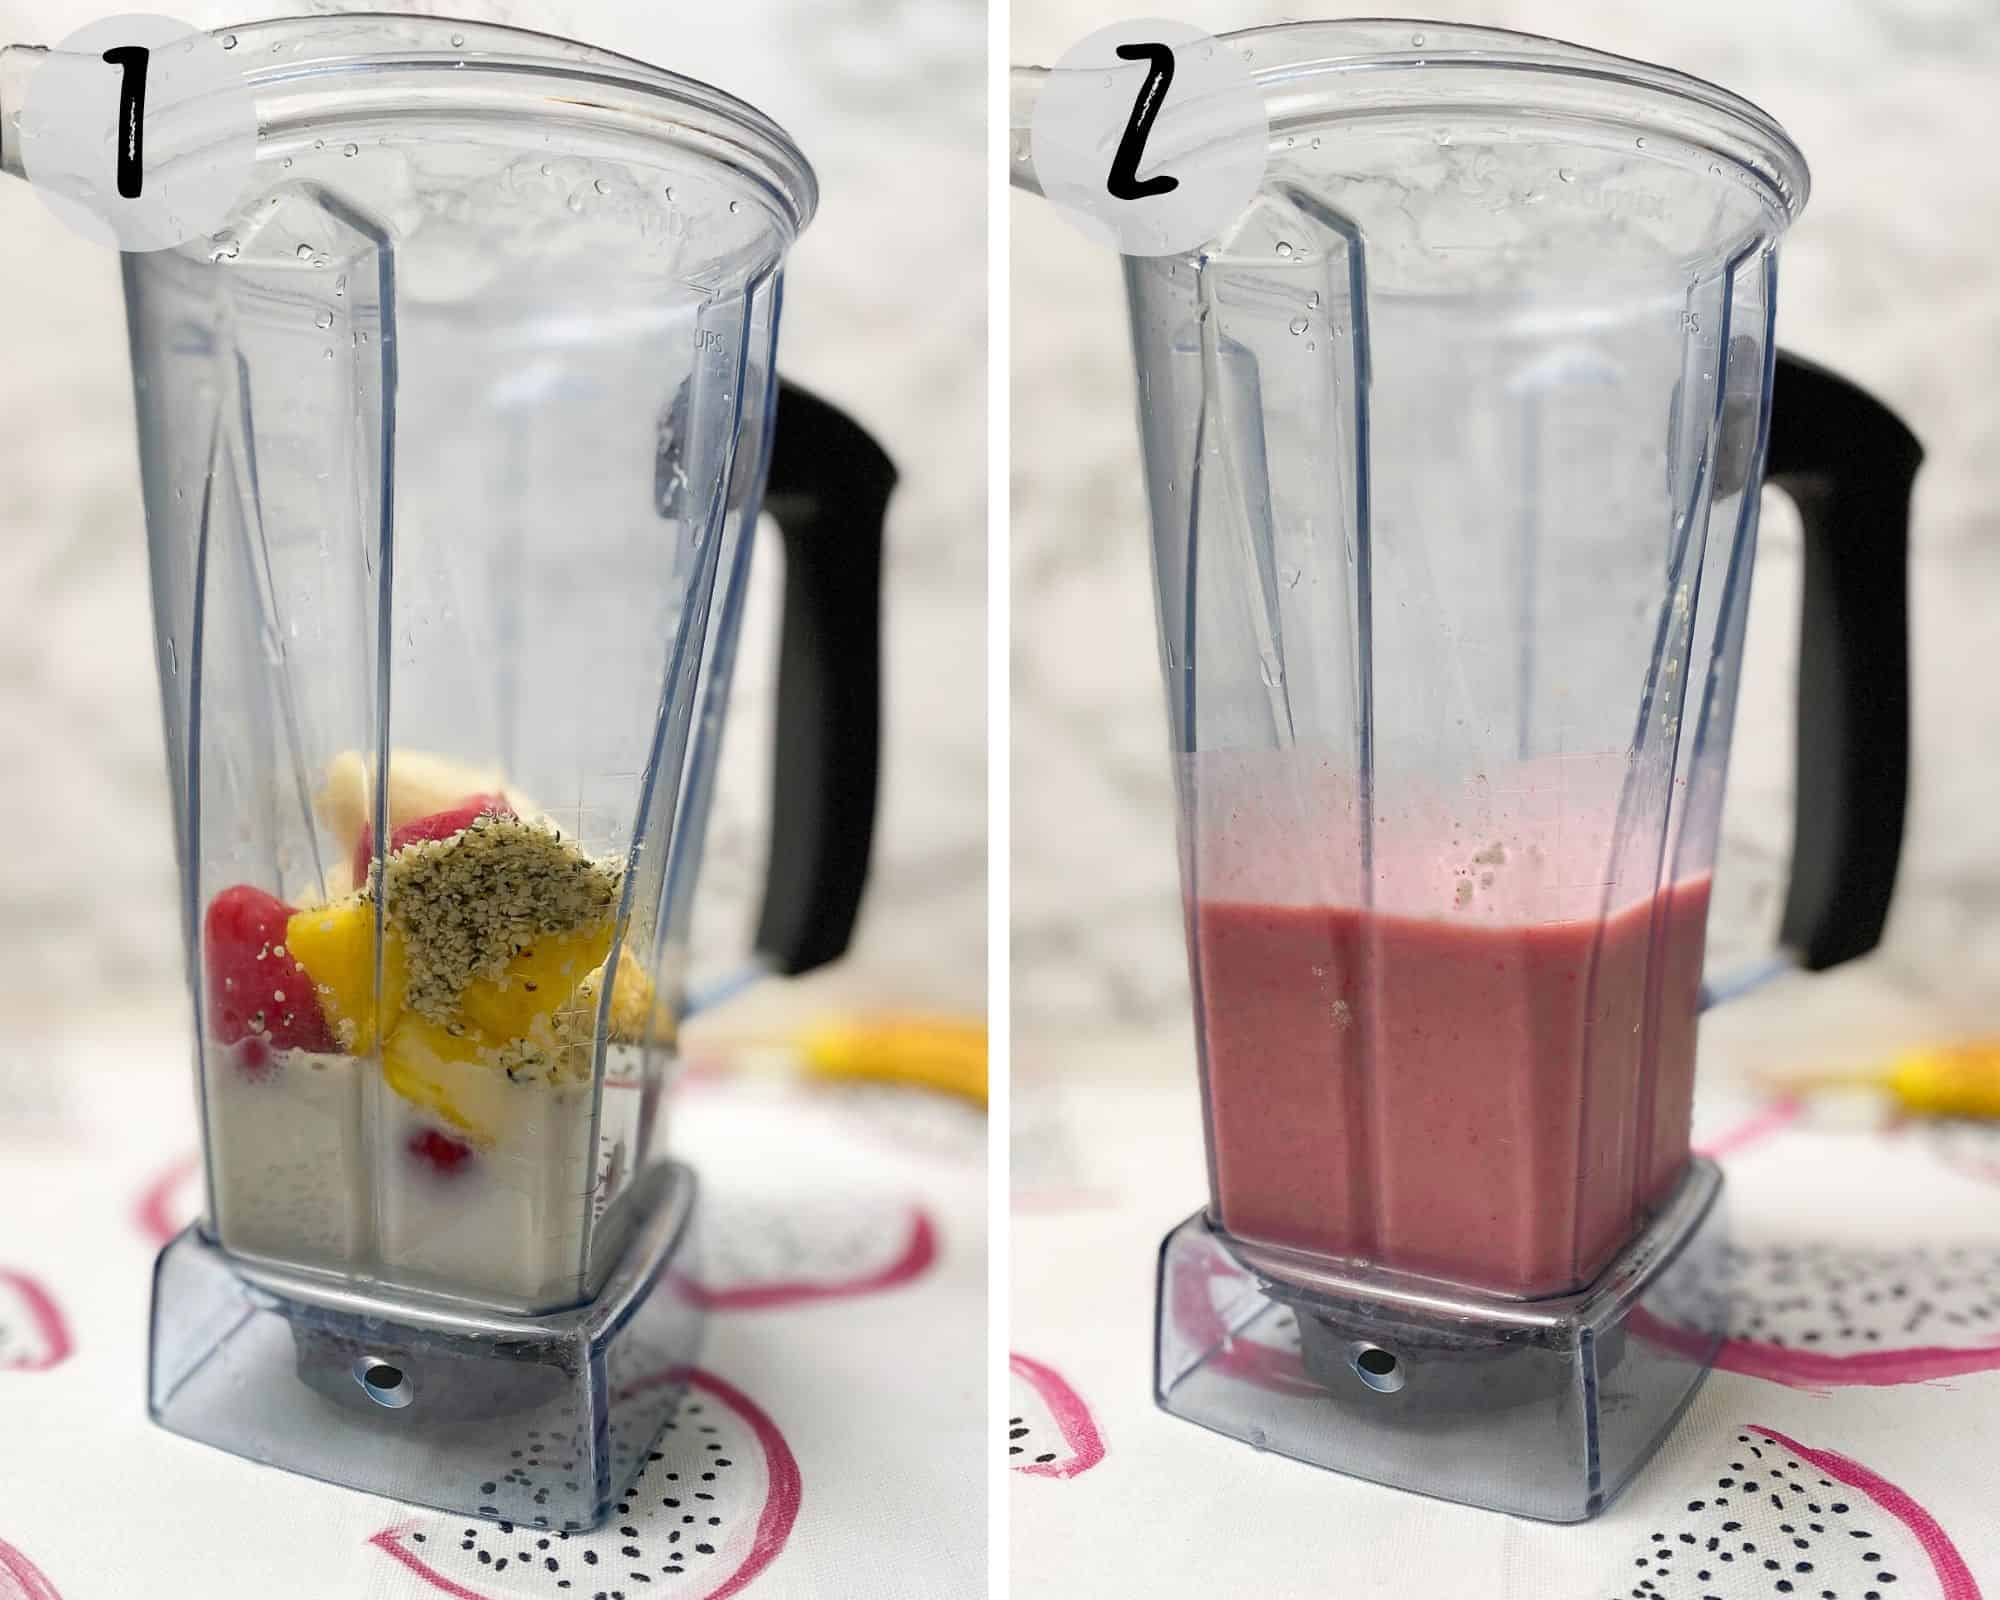 blender with banana, fruit and milk blended into a smoothie